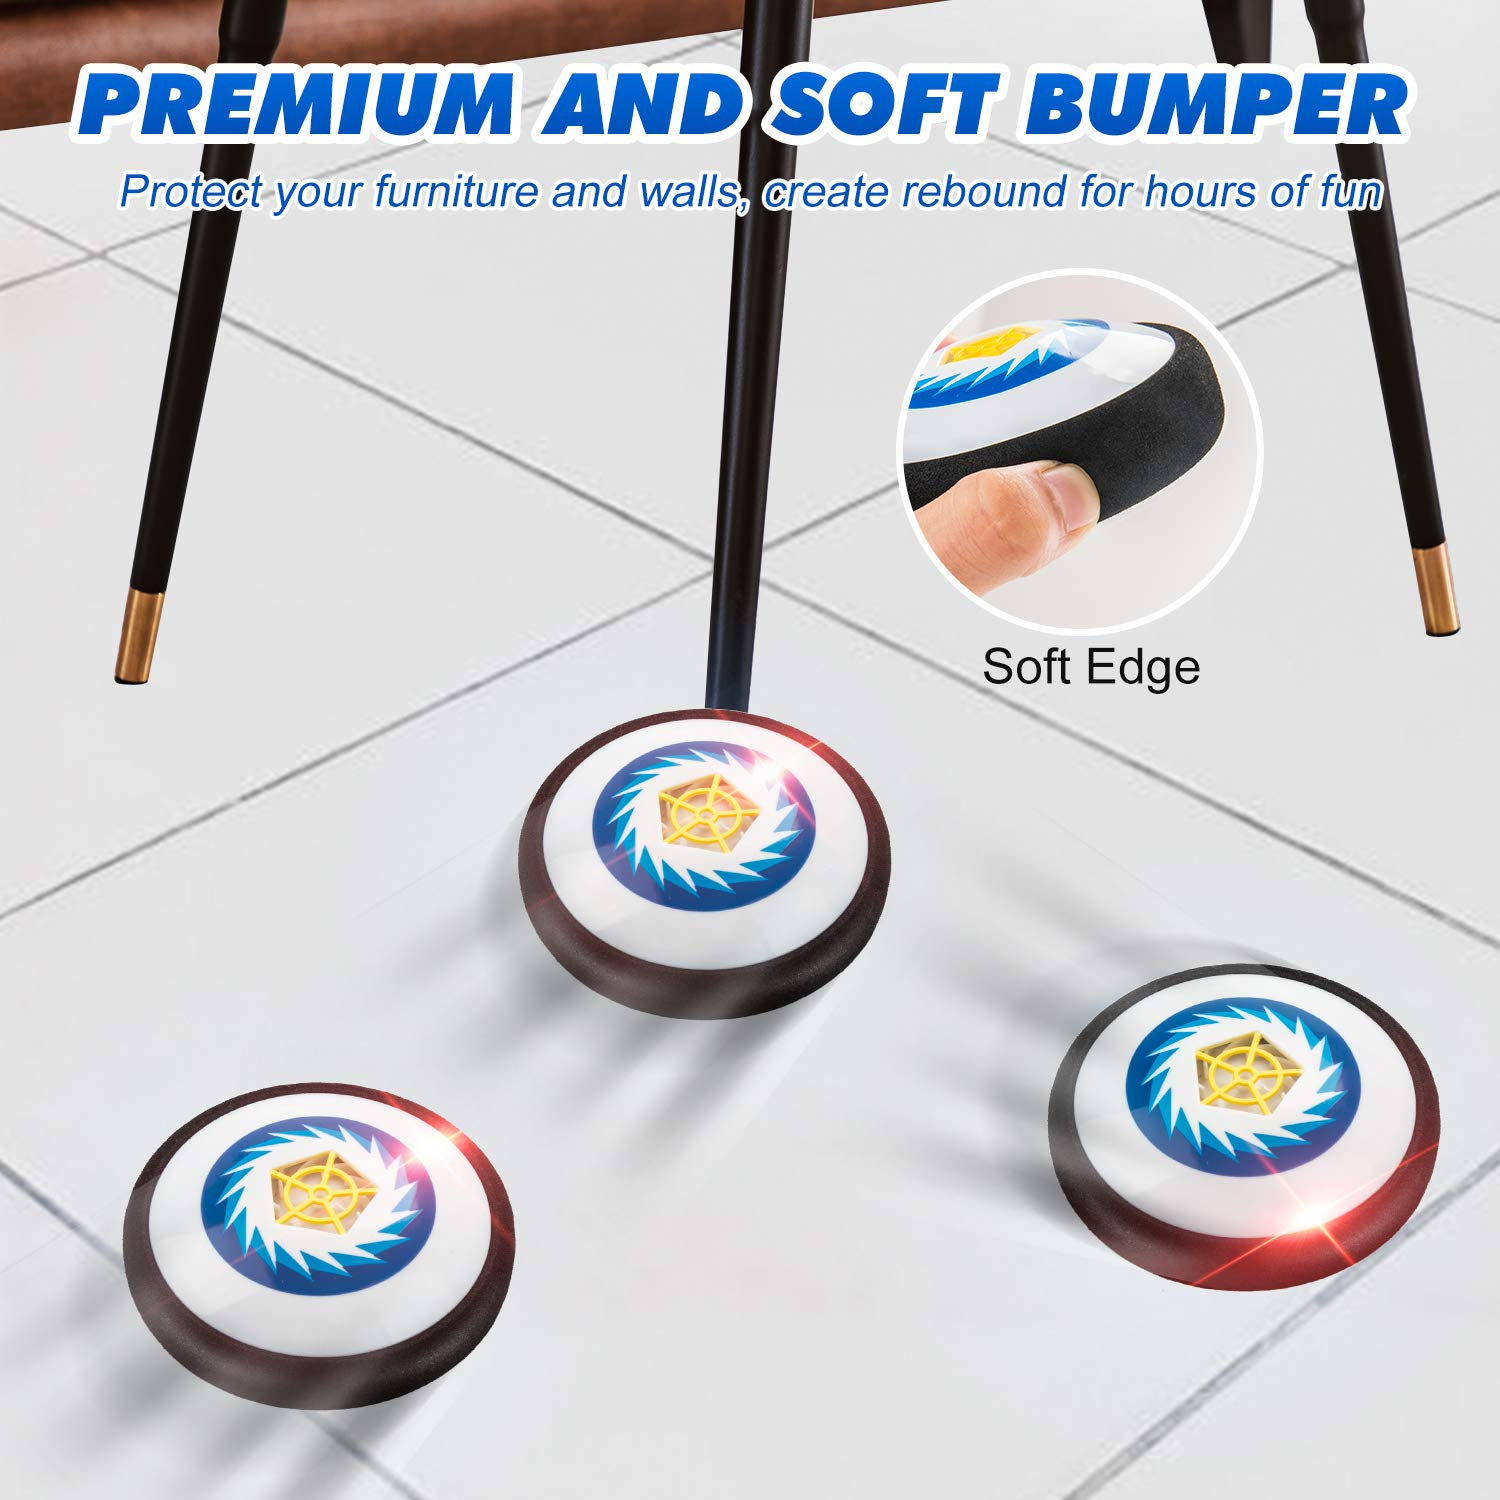 Kids Toys Hover Hockey Set- Hovering Hockey Toys with Foam Bumper for Indoor Games, Air Power Training Ball Playing Hockey Game,Hockey Game Toys for 3 4 5 6 7 8 9 10 11 12 Year Old Boys Girls